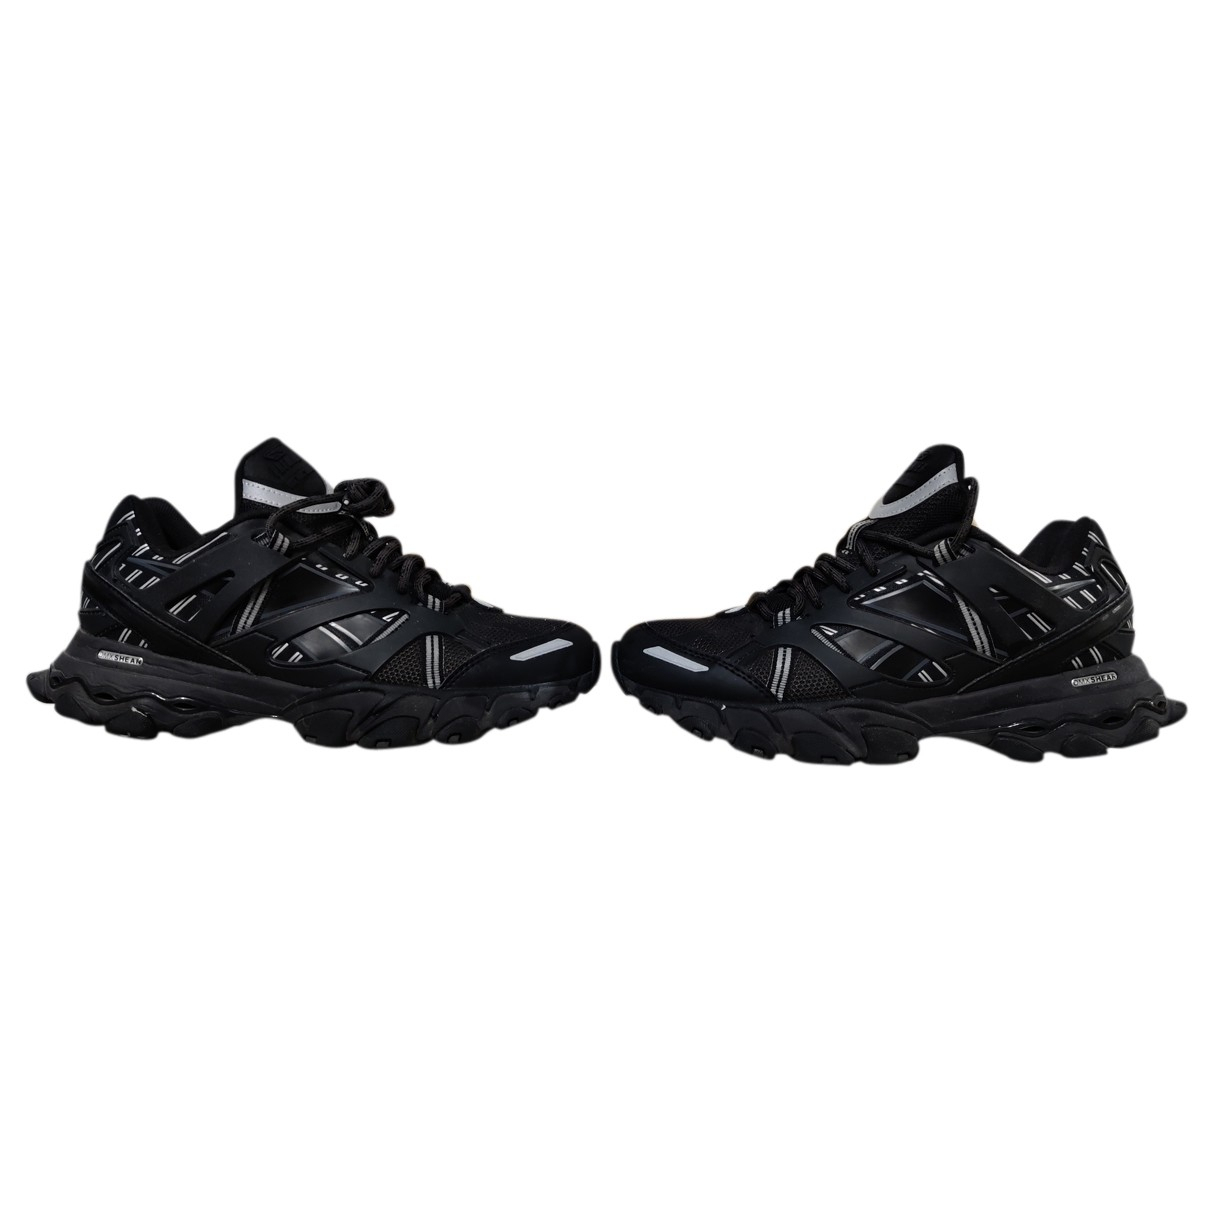 Reebok N Black Cloth Trainers for Women 6 US